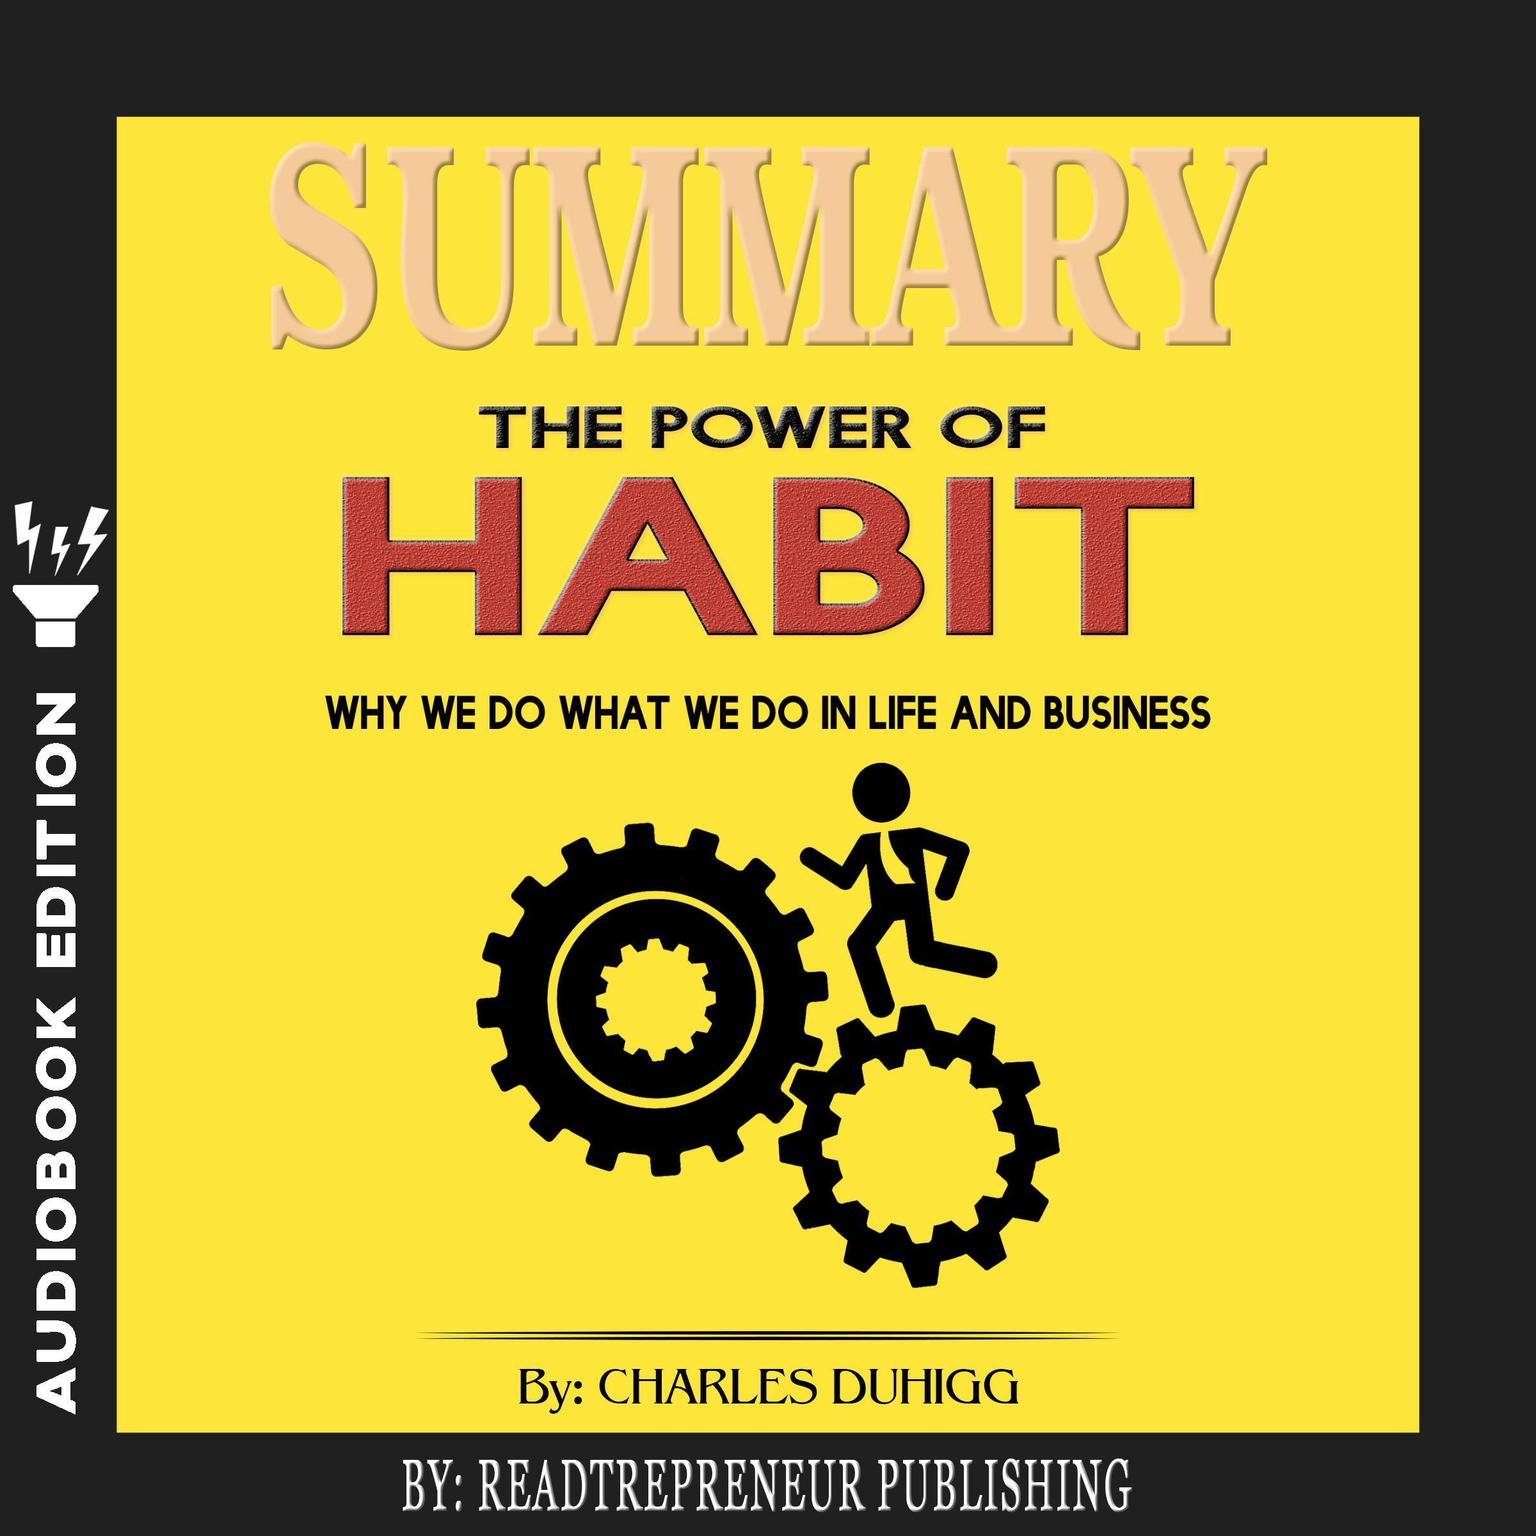 Printable Summary of The Power of Habit: Why We Do What We Do in Life and Business by Charles Duhigg Audiobook Cover Art